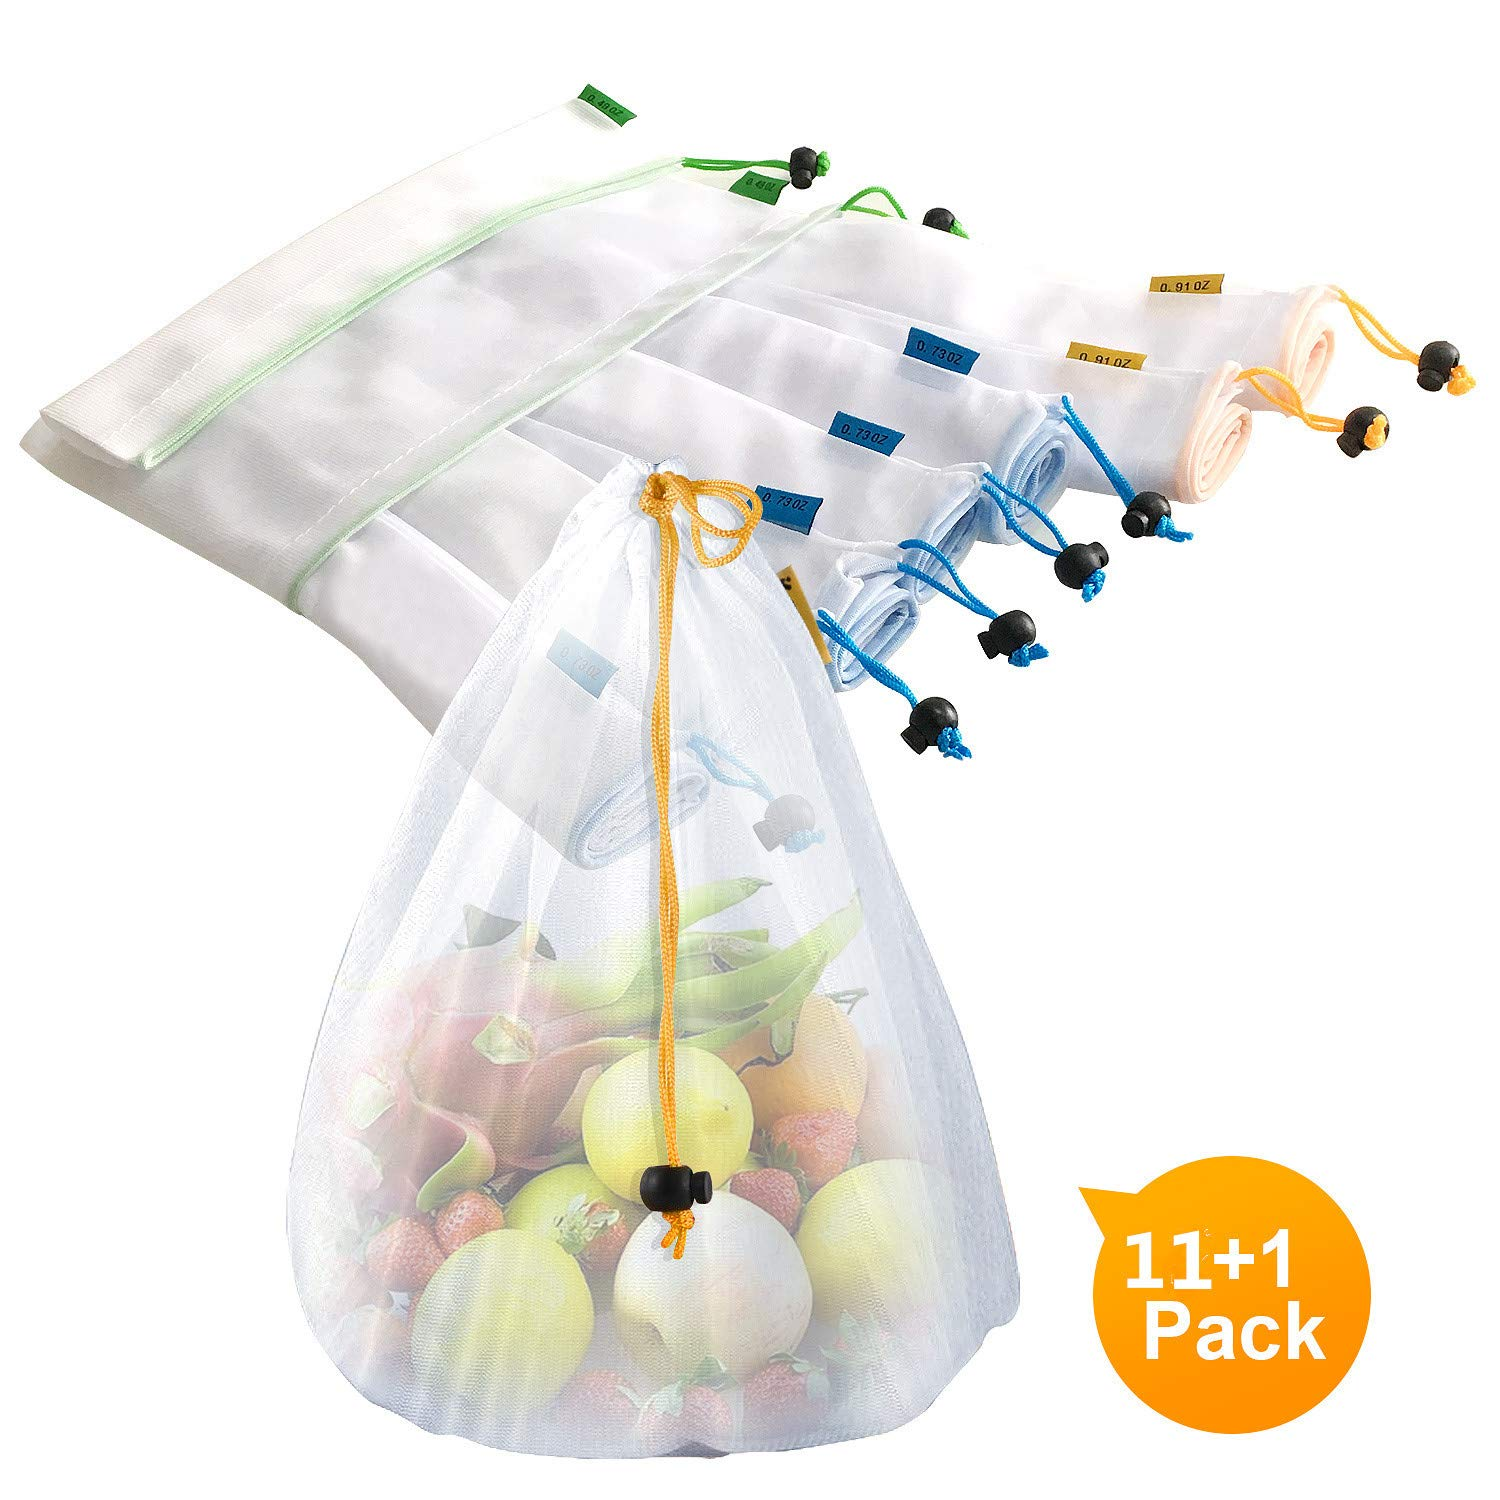 Sfee 12 Pack Reusable Produce Bags and Grocery Shopping Bags, Eco Friendly Lightweight Washable See Through Mesh Produce Bags with Drawstring Tare Weight Tags for Fruit, Vegetable, Fridge, Toys